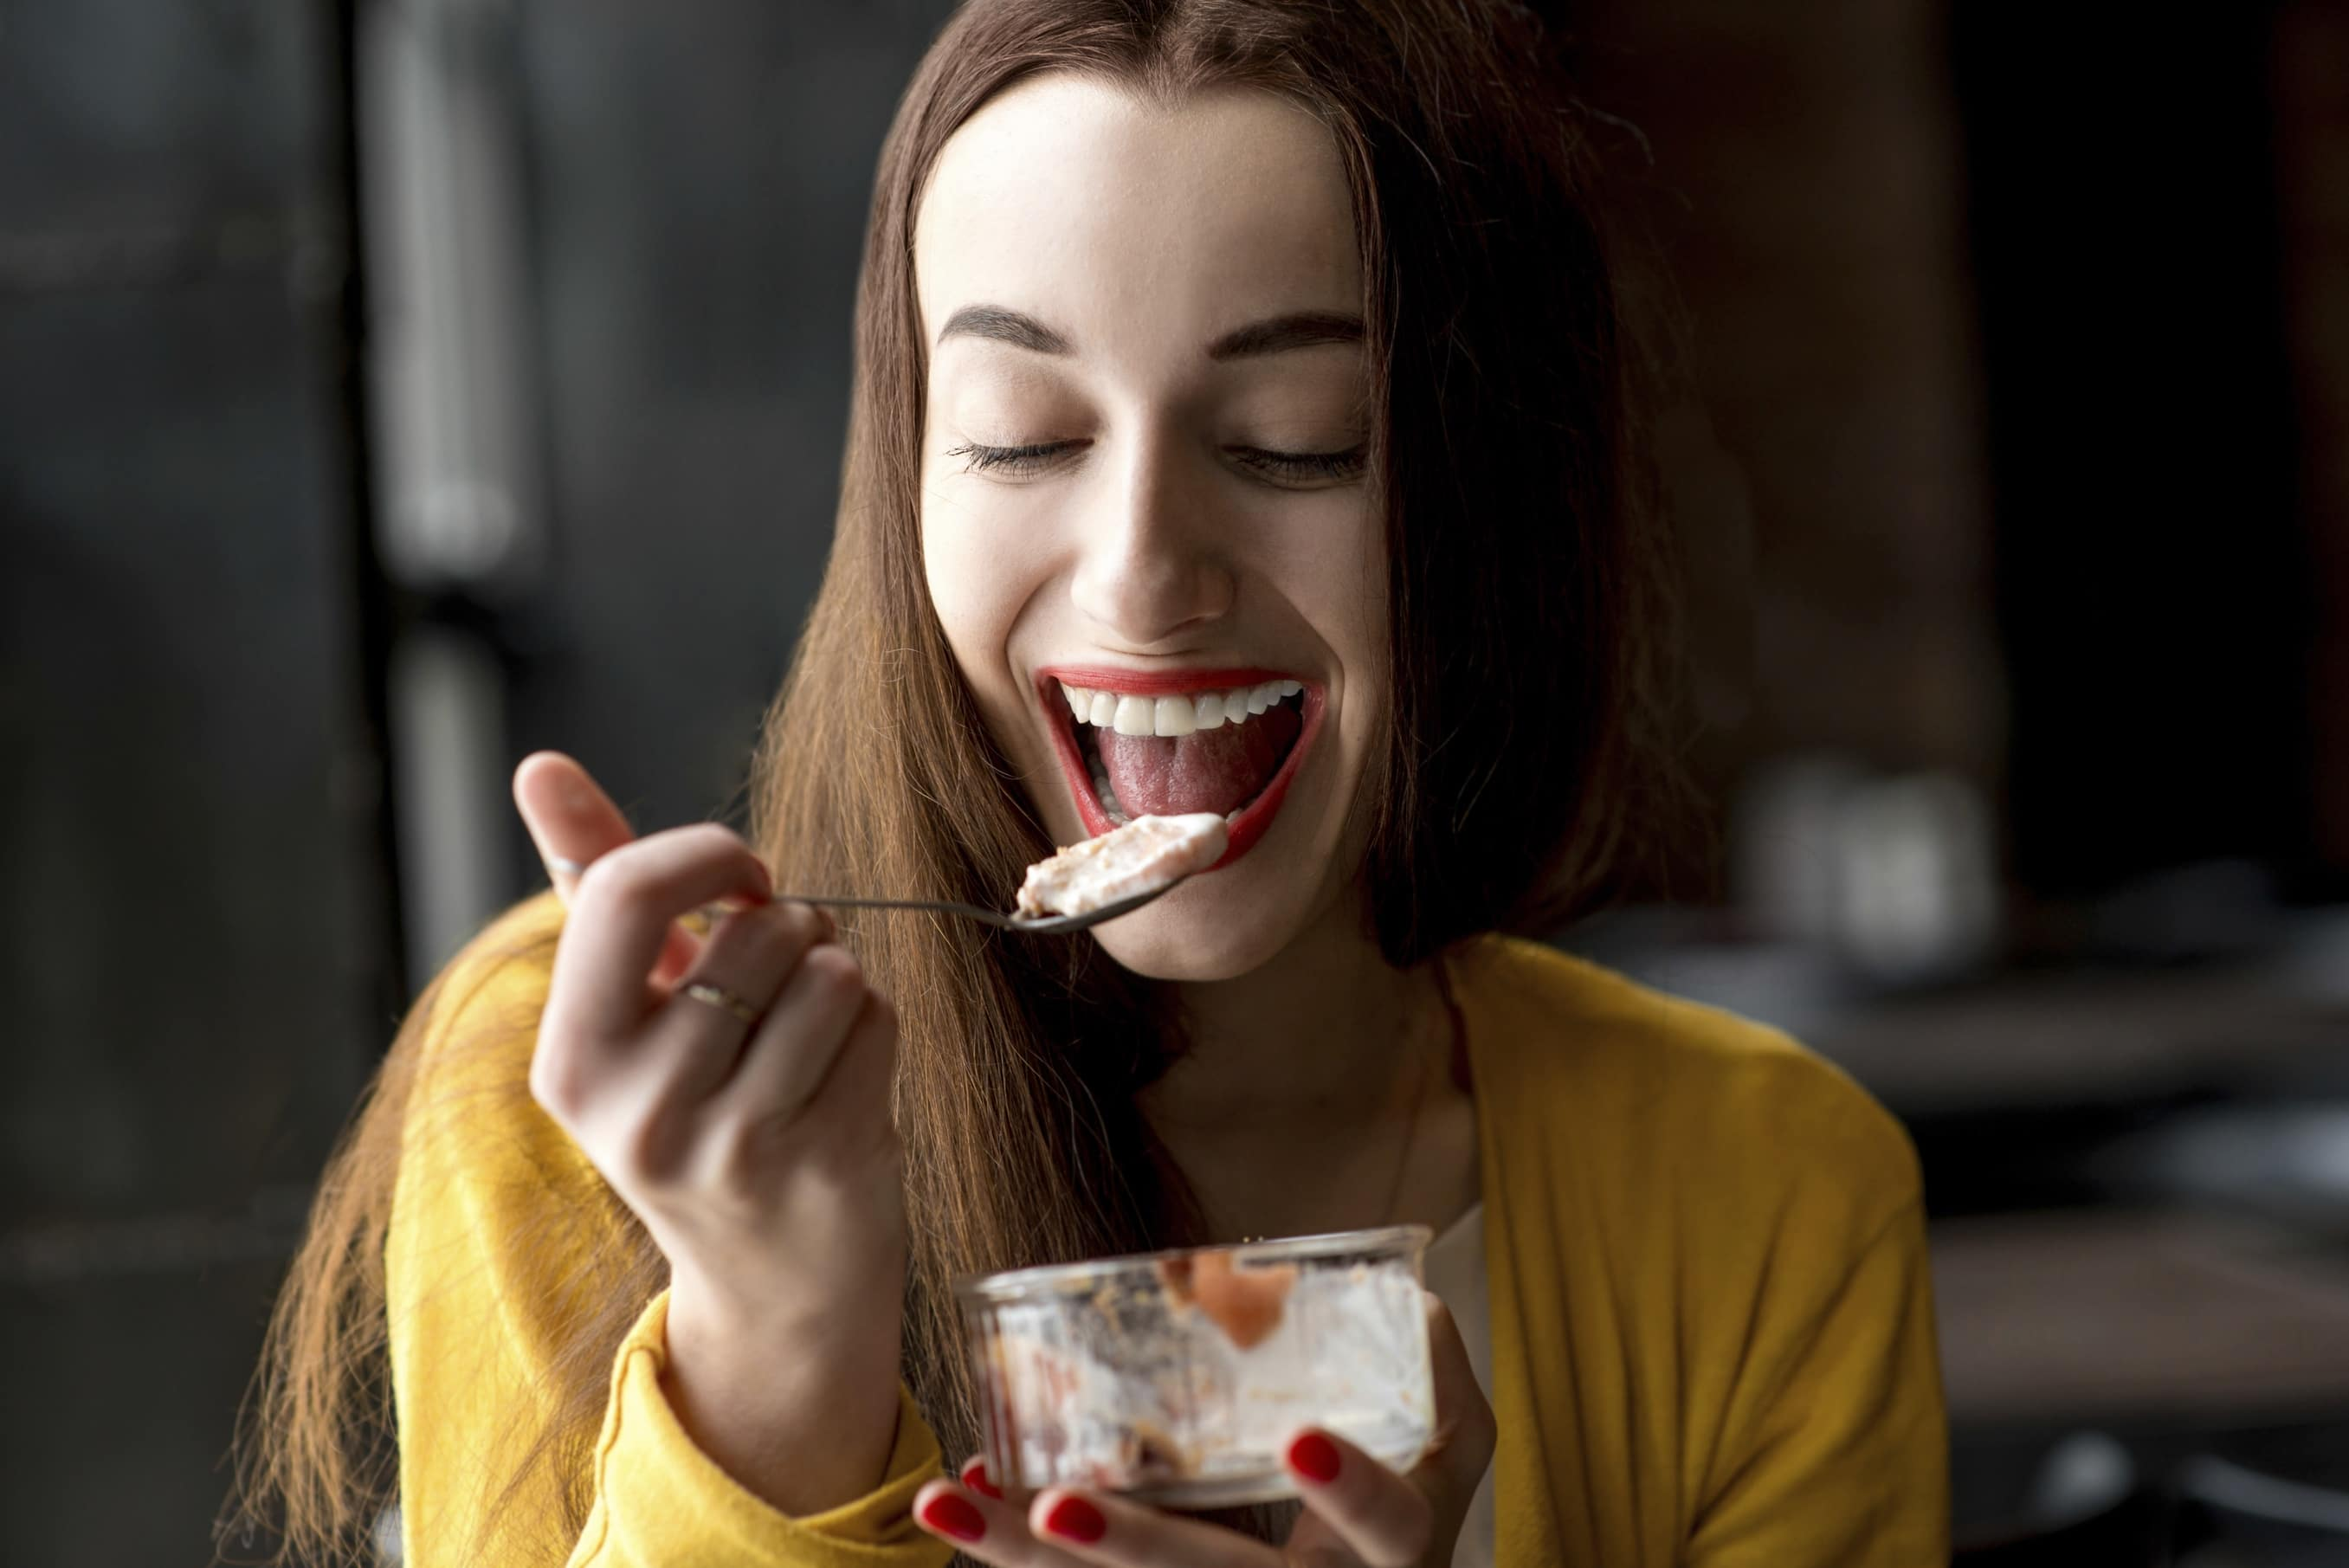 Woman eating starch: does eating starch make you fat?